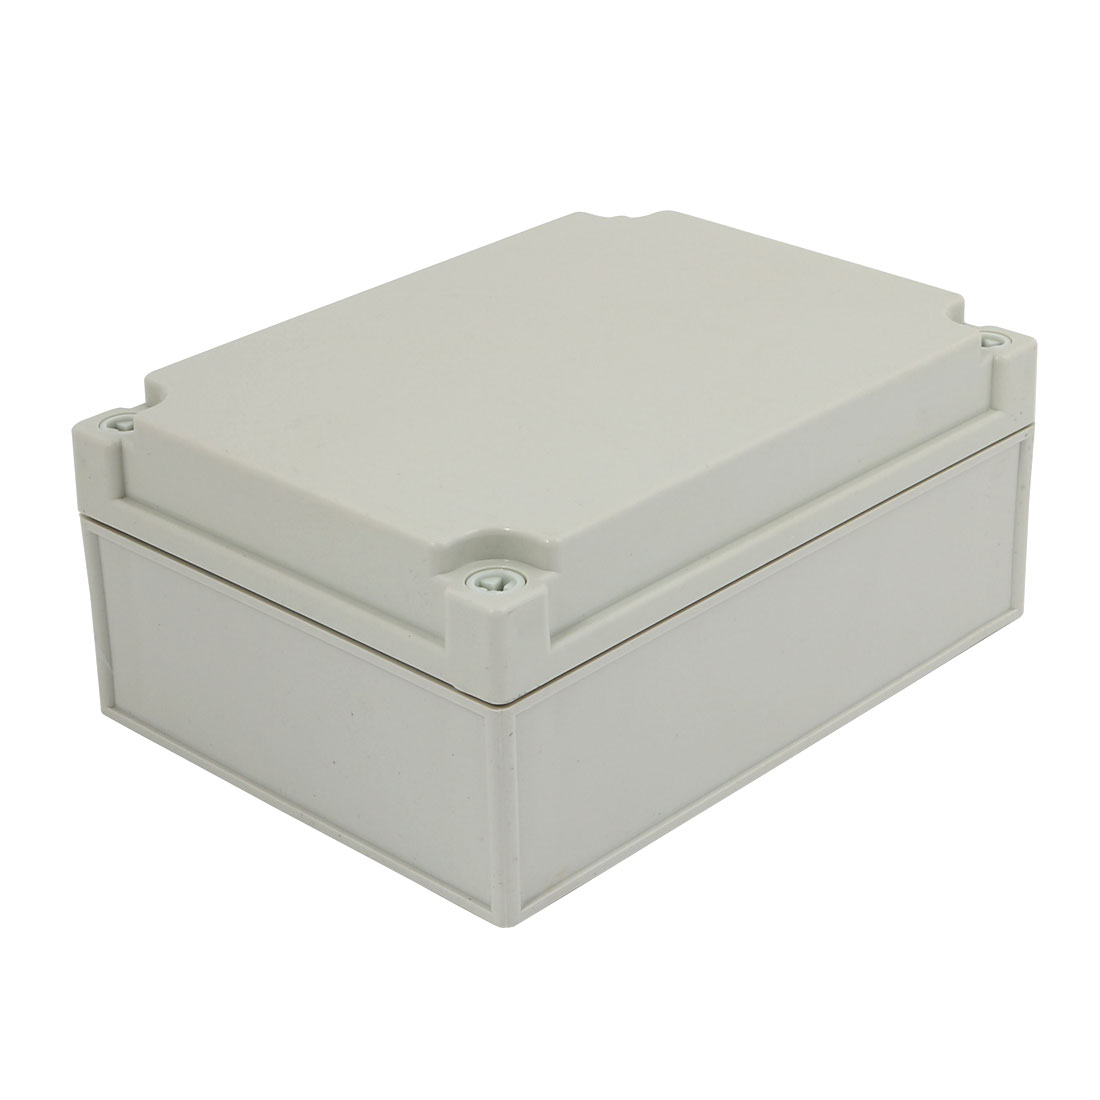 175mm x 175mm x 75mm Electronic ABS Plastic DIY Junction Box Enclosure Case Gray